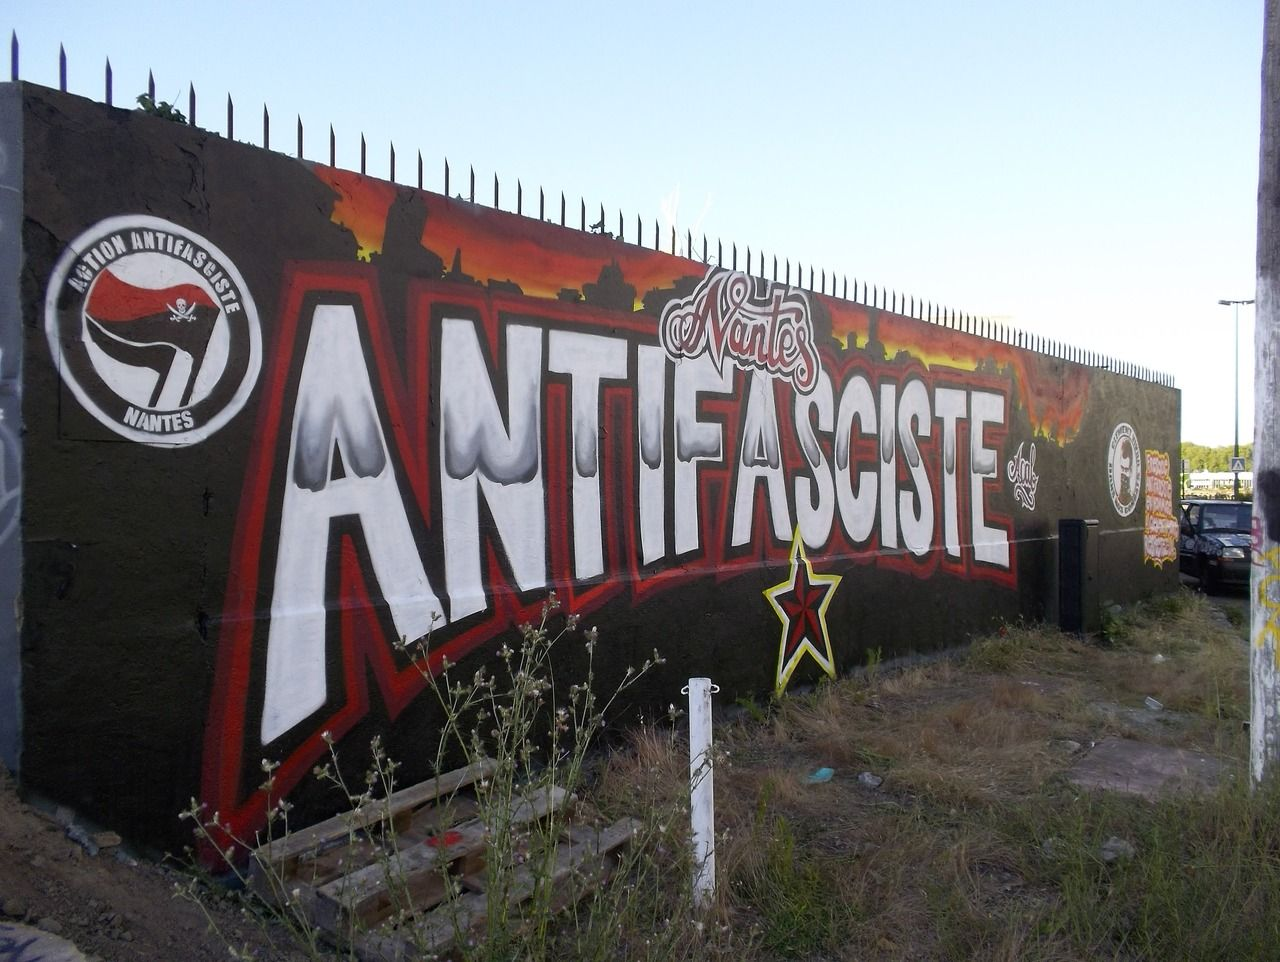 More antifa street art